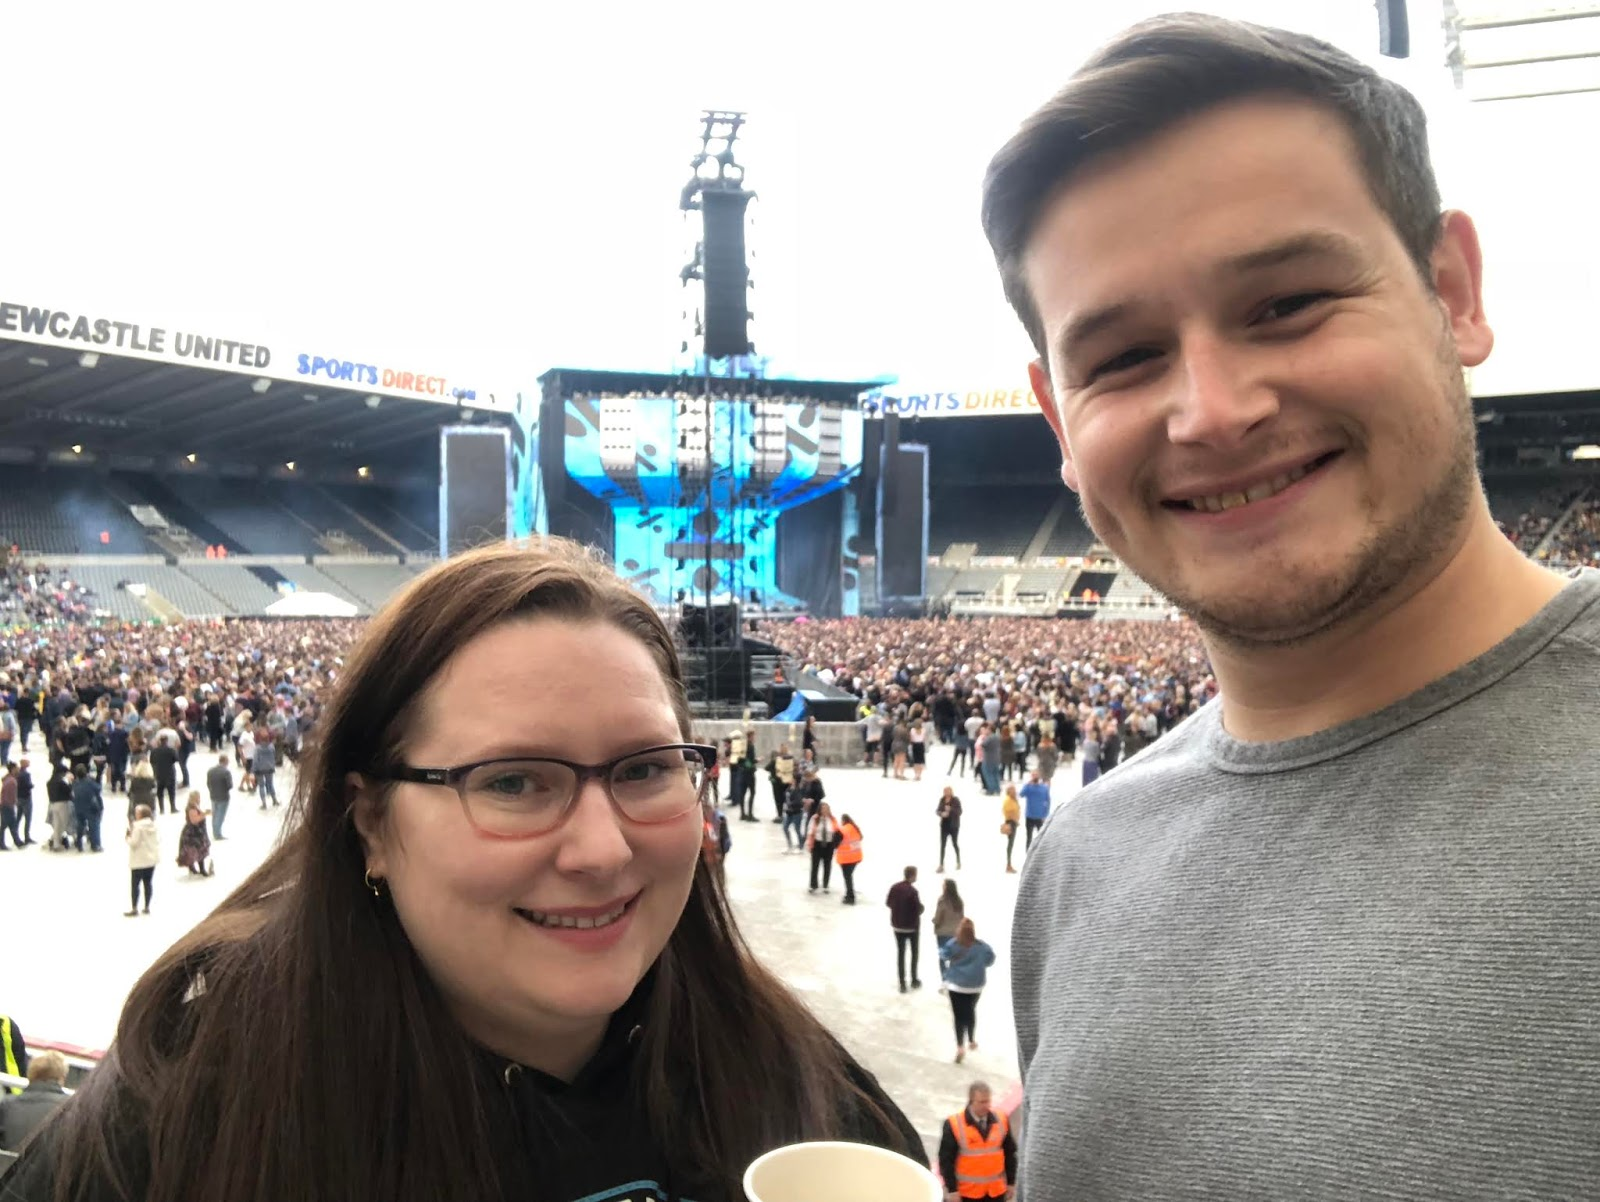 Ed Sheeran, Newcastle, St James Park, Live, Concert